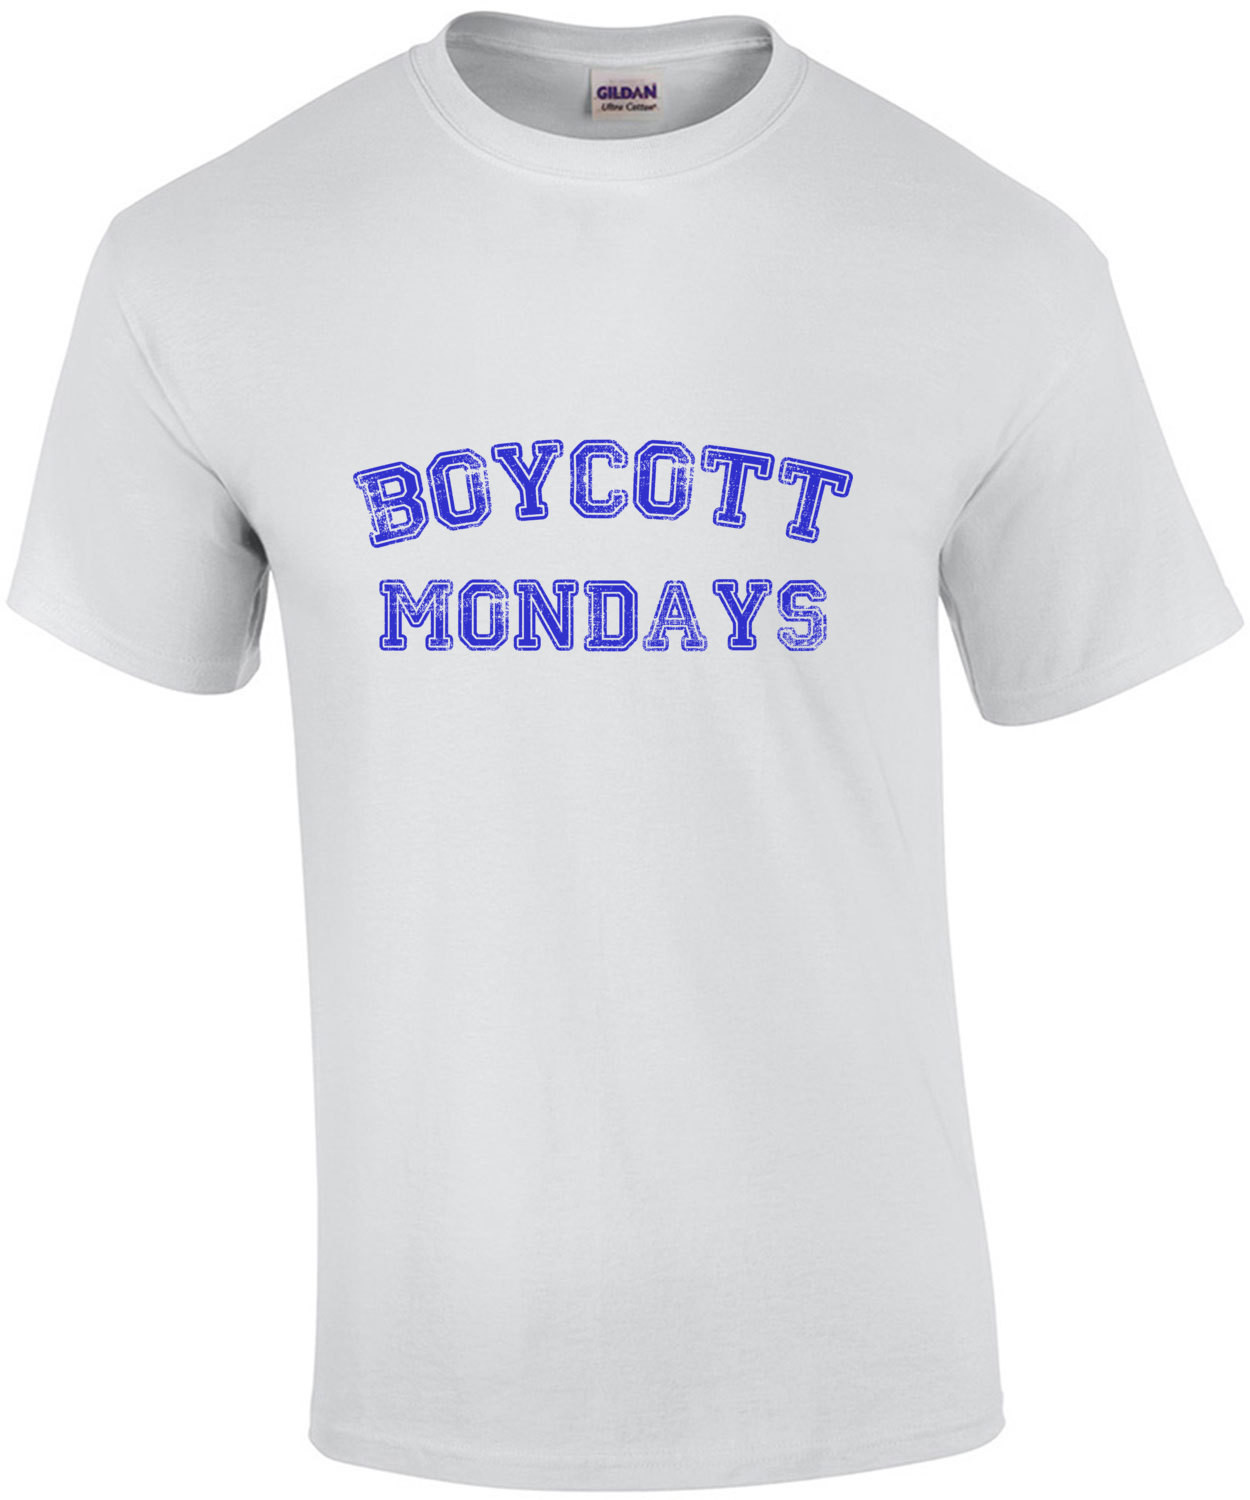 Boycott Mondays - Funny work t-shirt